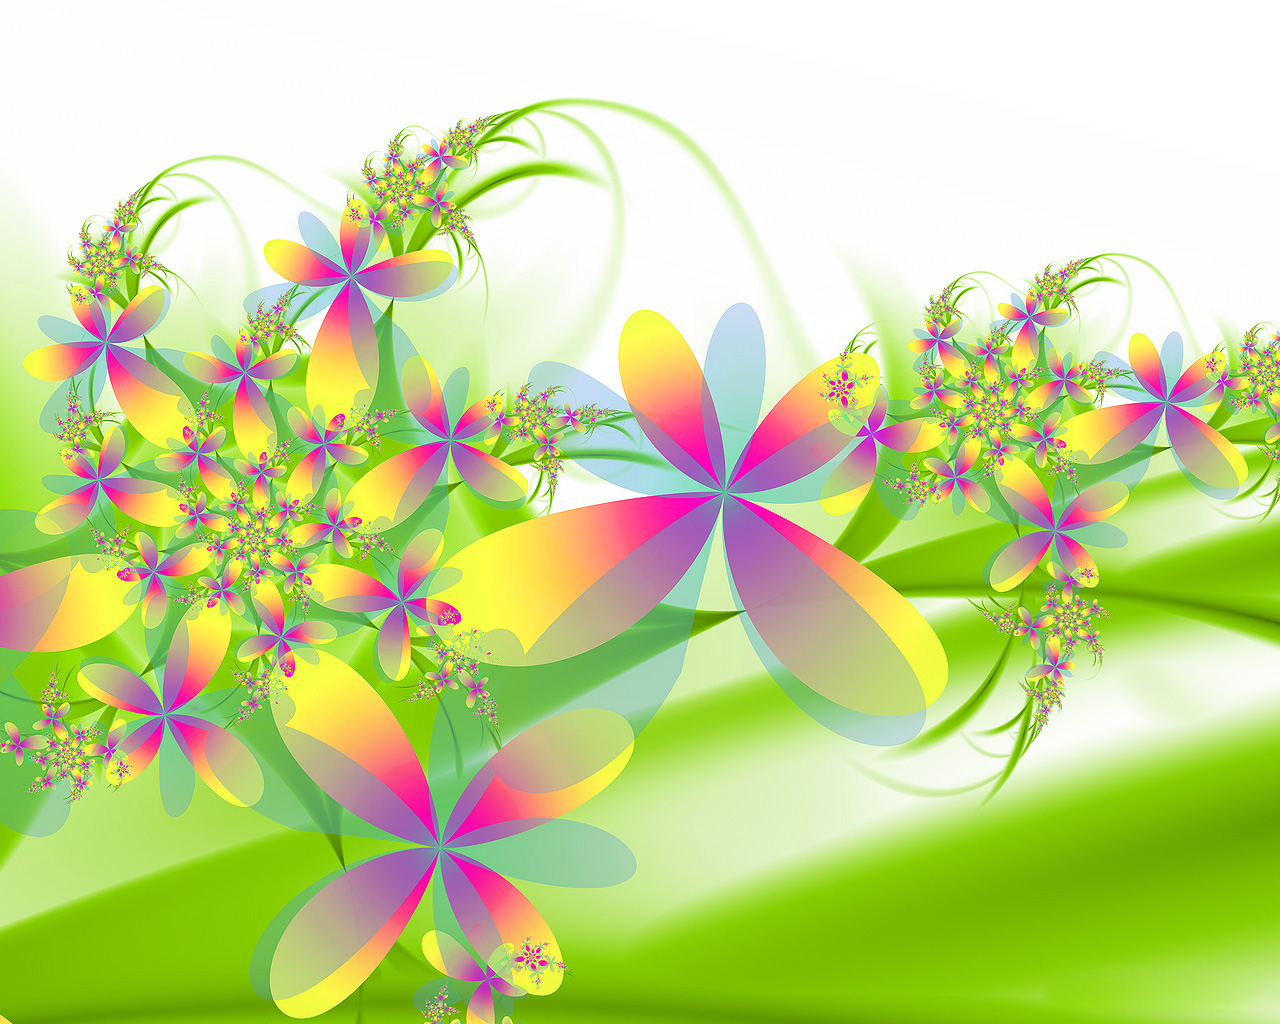 3D Flower Wallpapers For Desktop 2 Cool Wallpaper